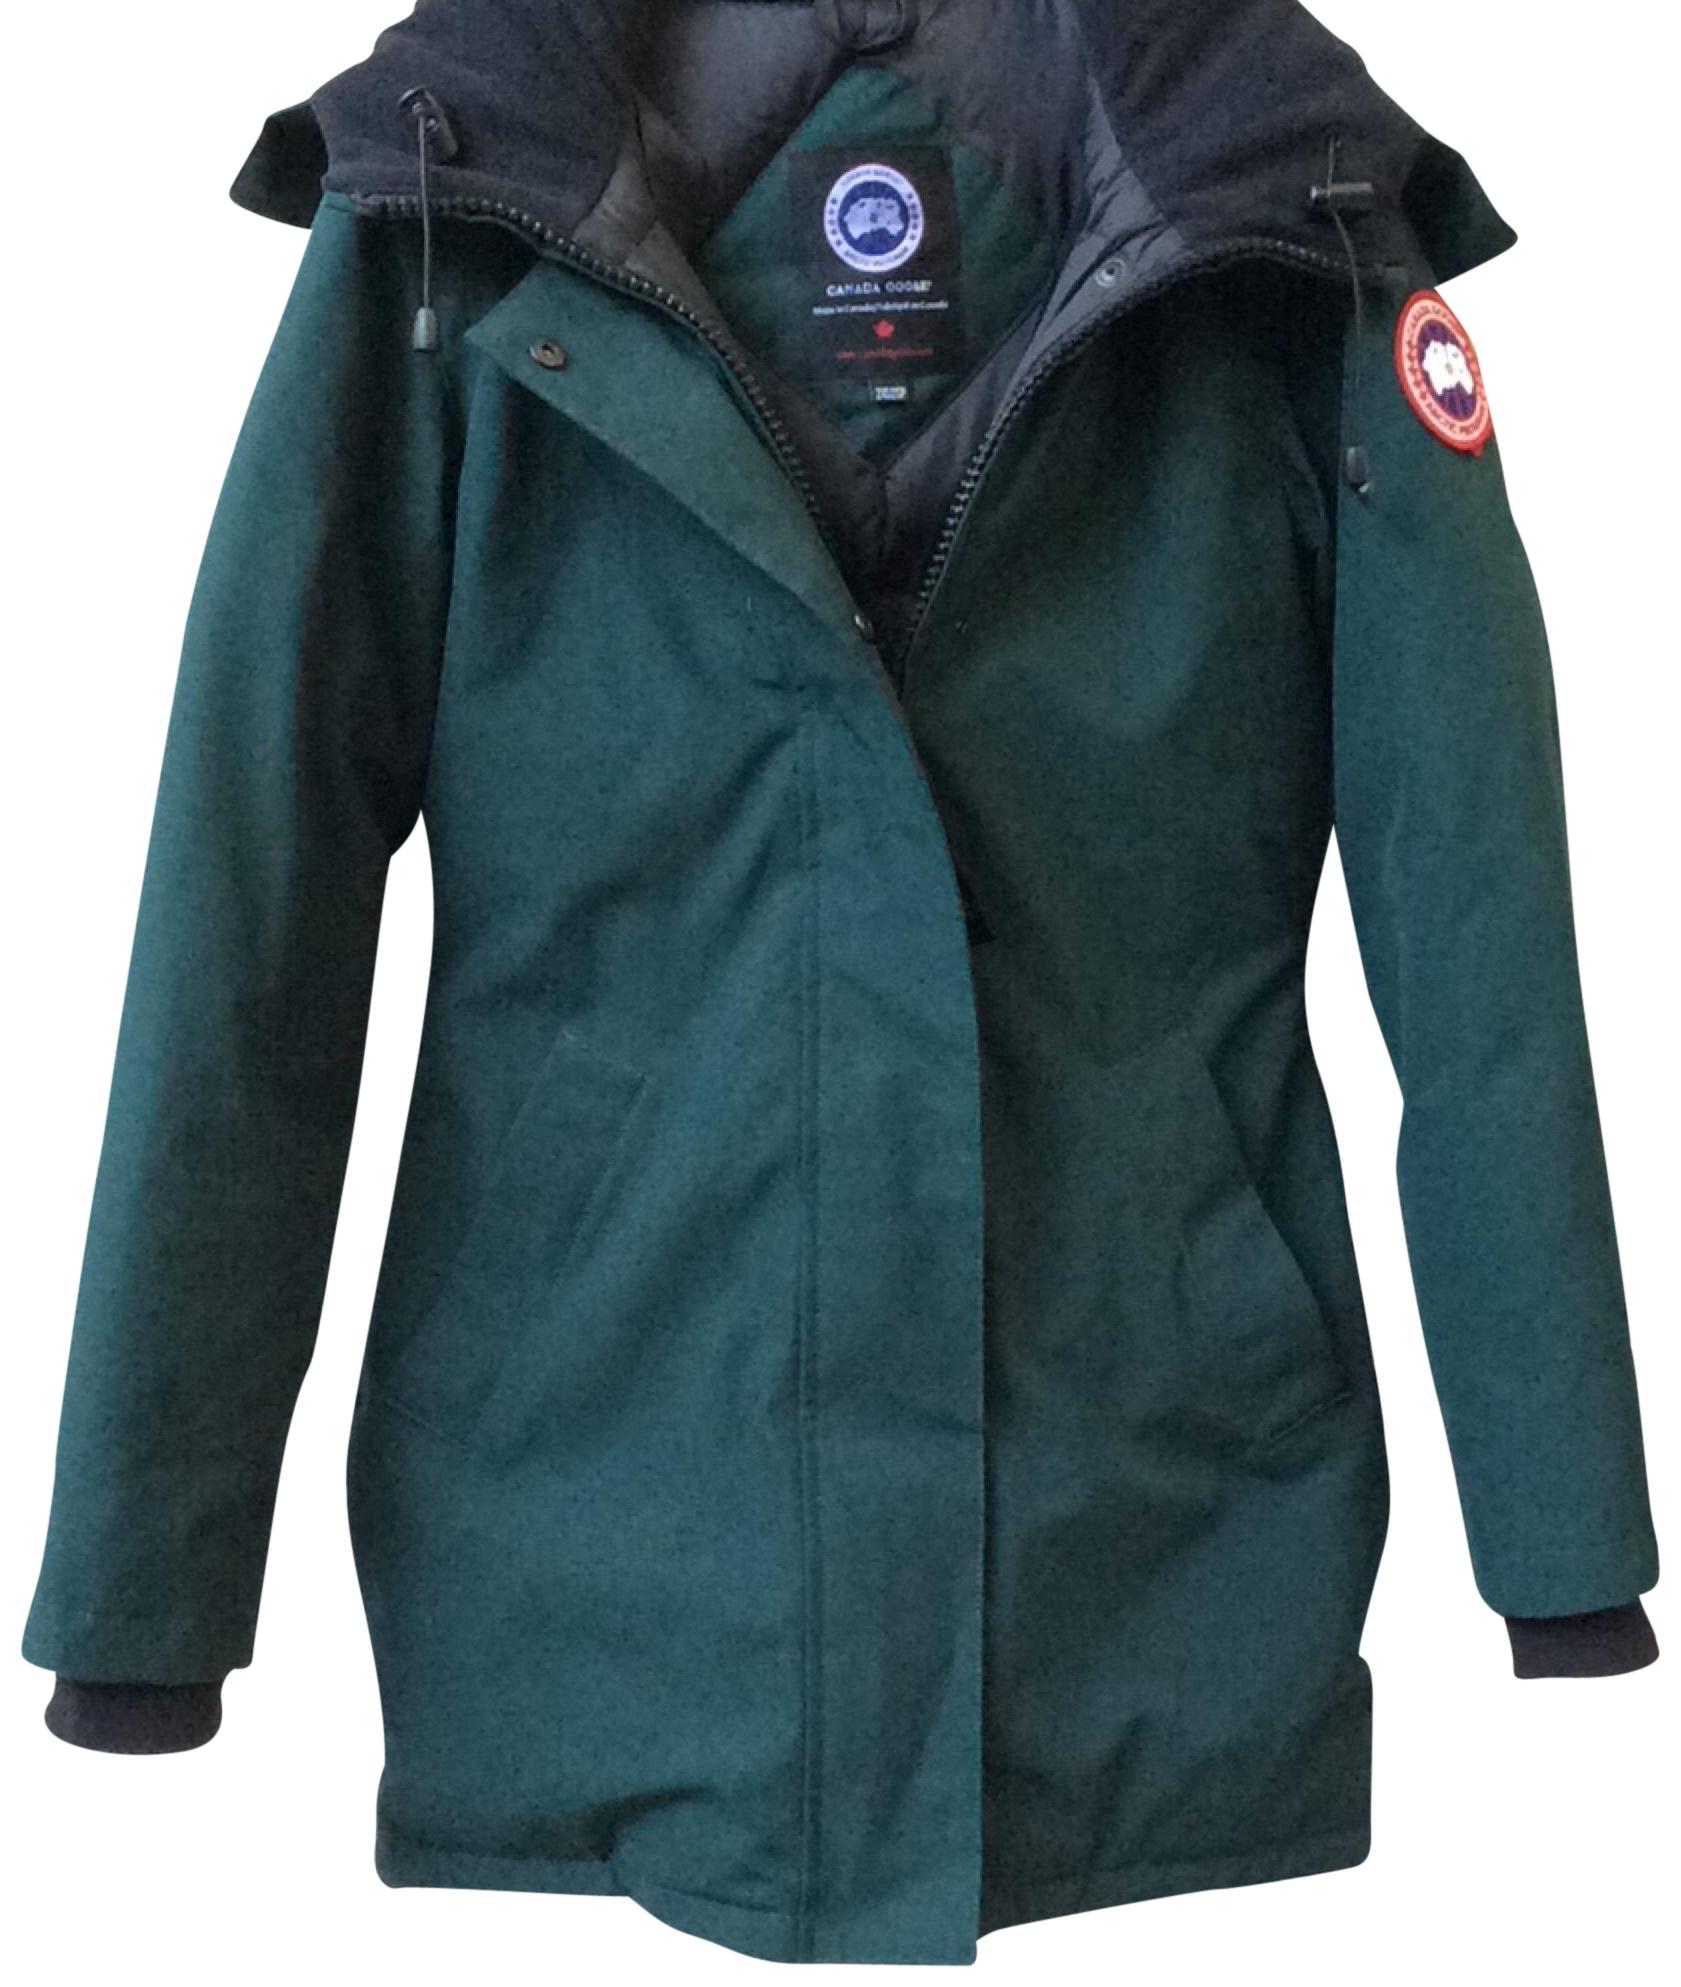 Canada Goose Puffer Moncler Jacket New Coat ...